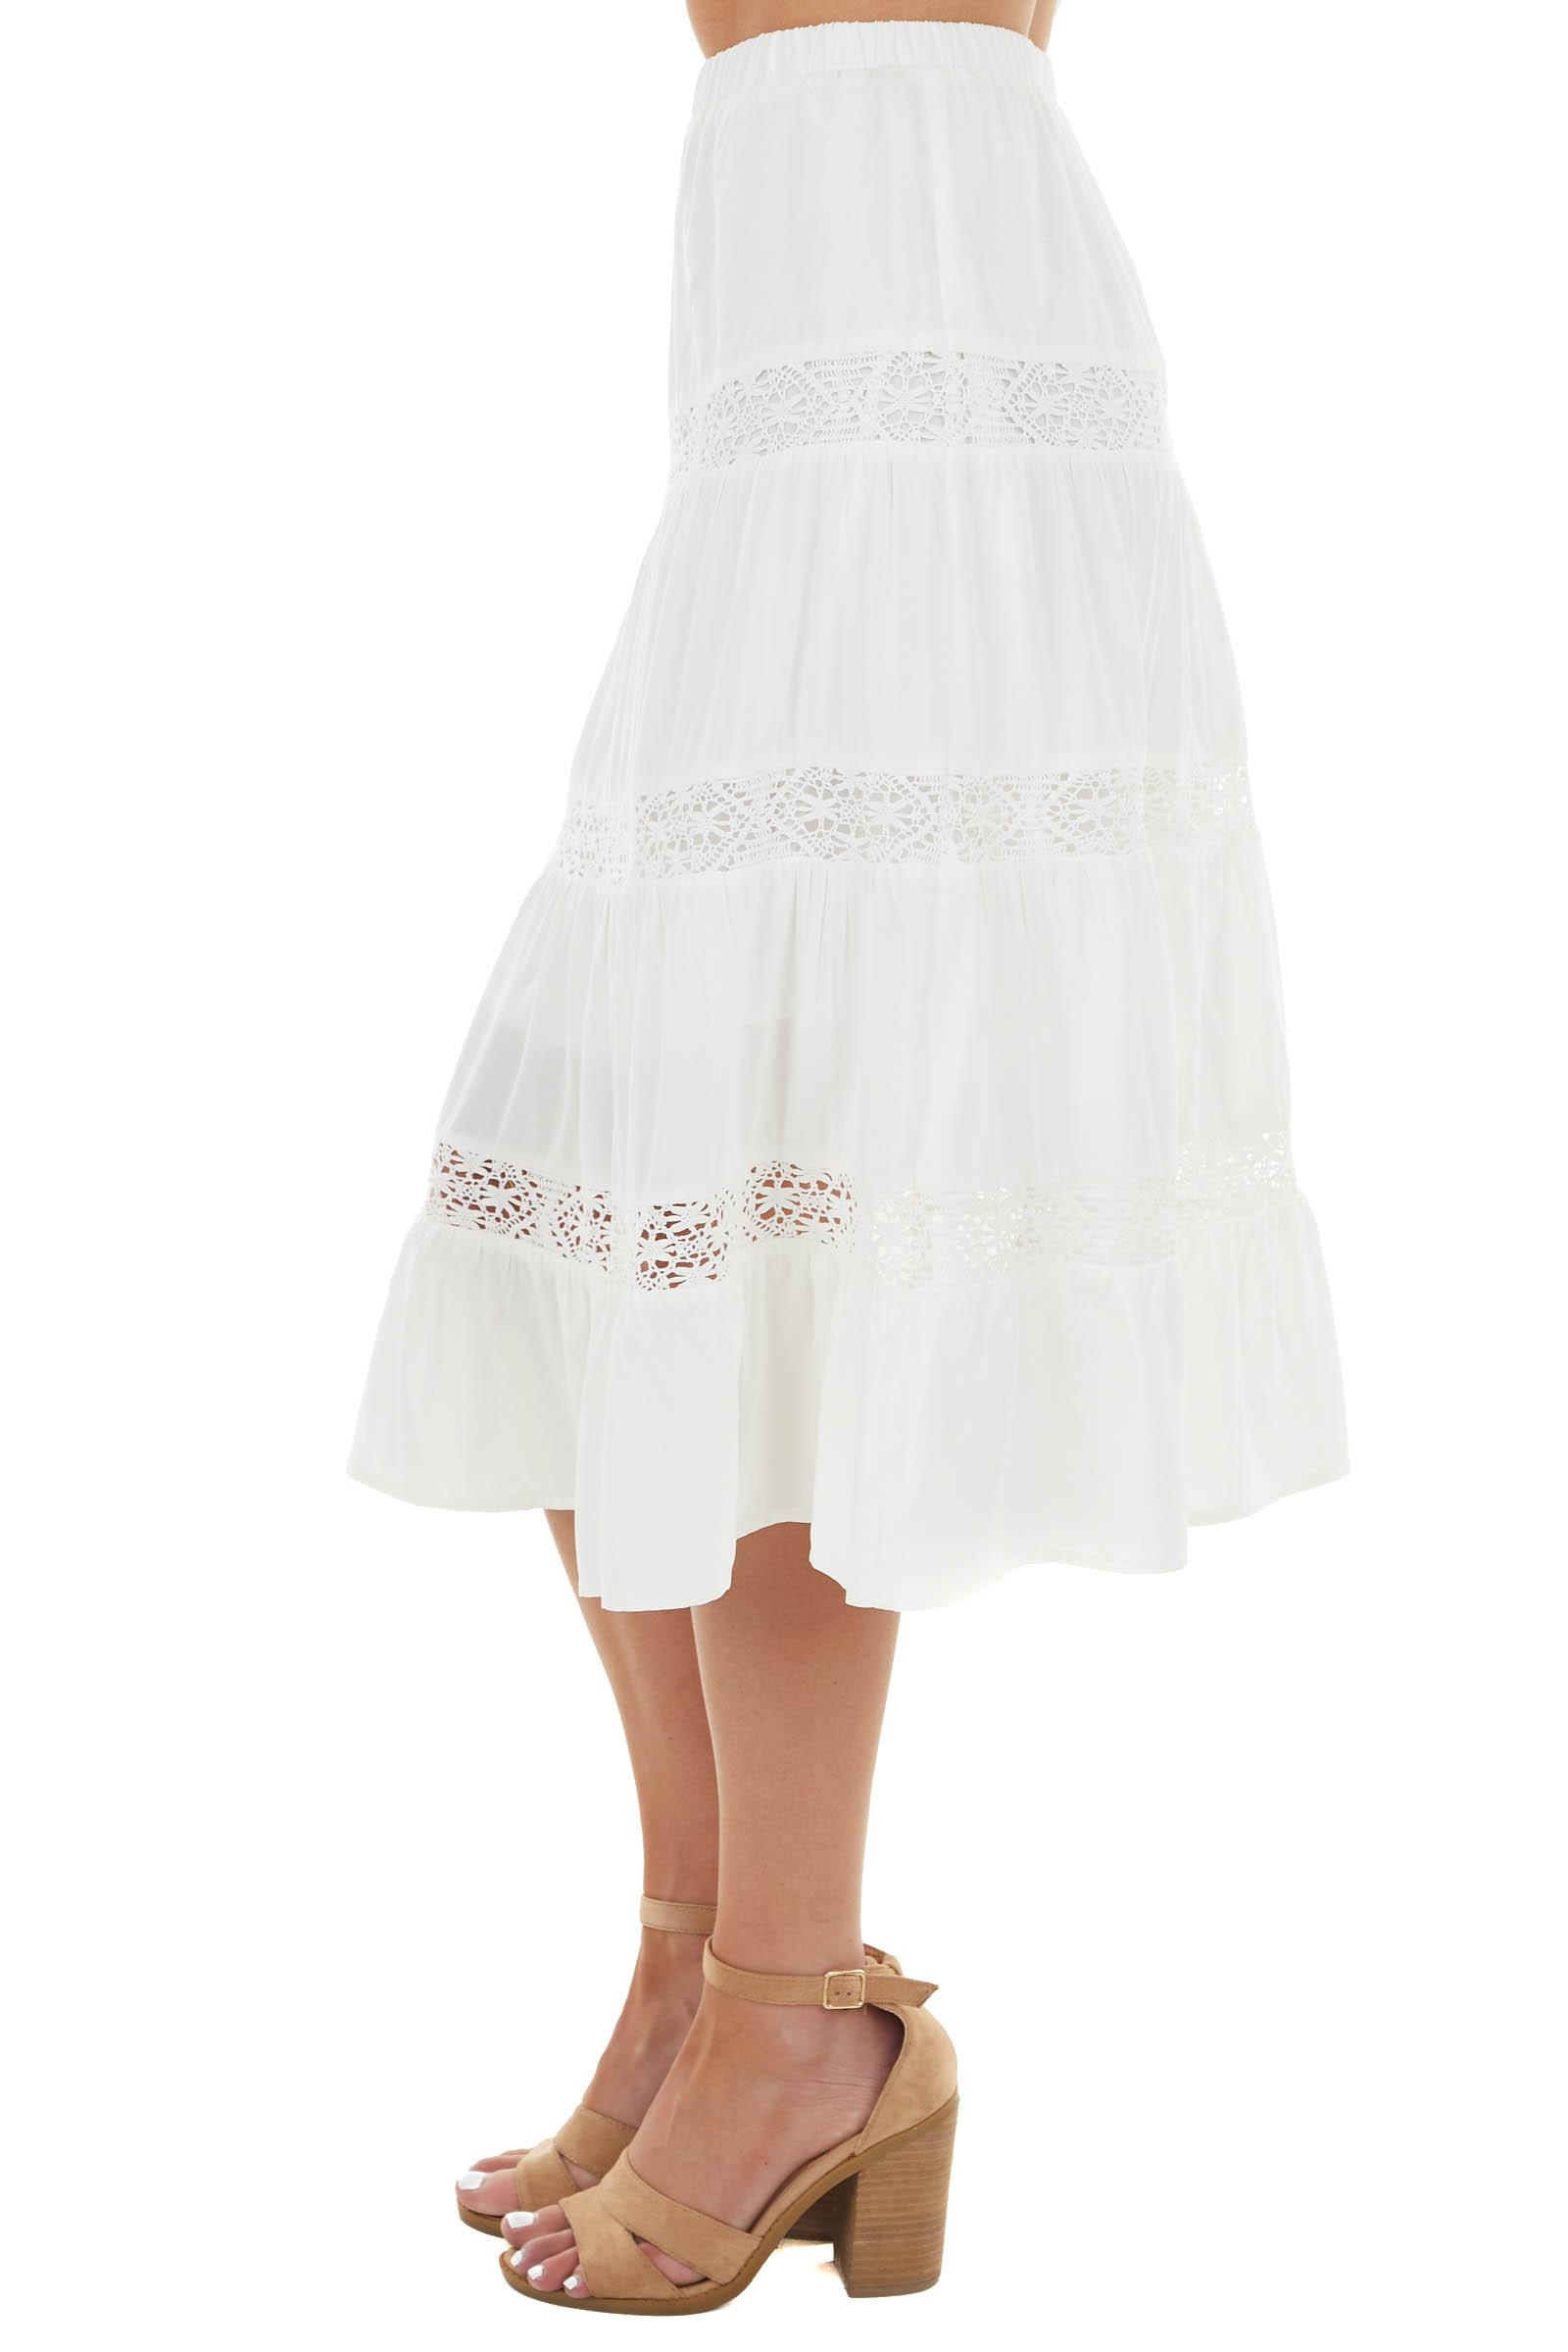 Off White Tiered Maxi Skirt with Lace Detail